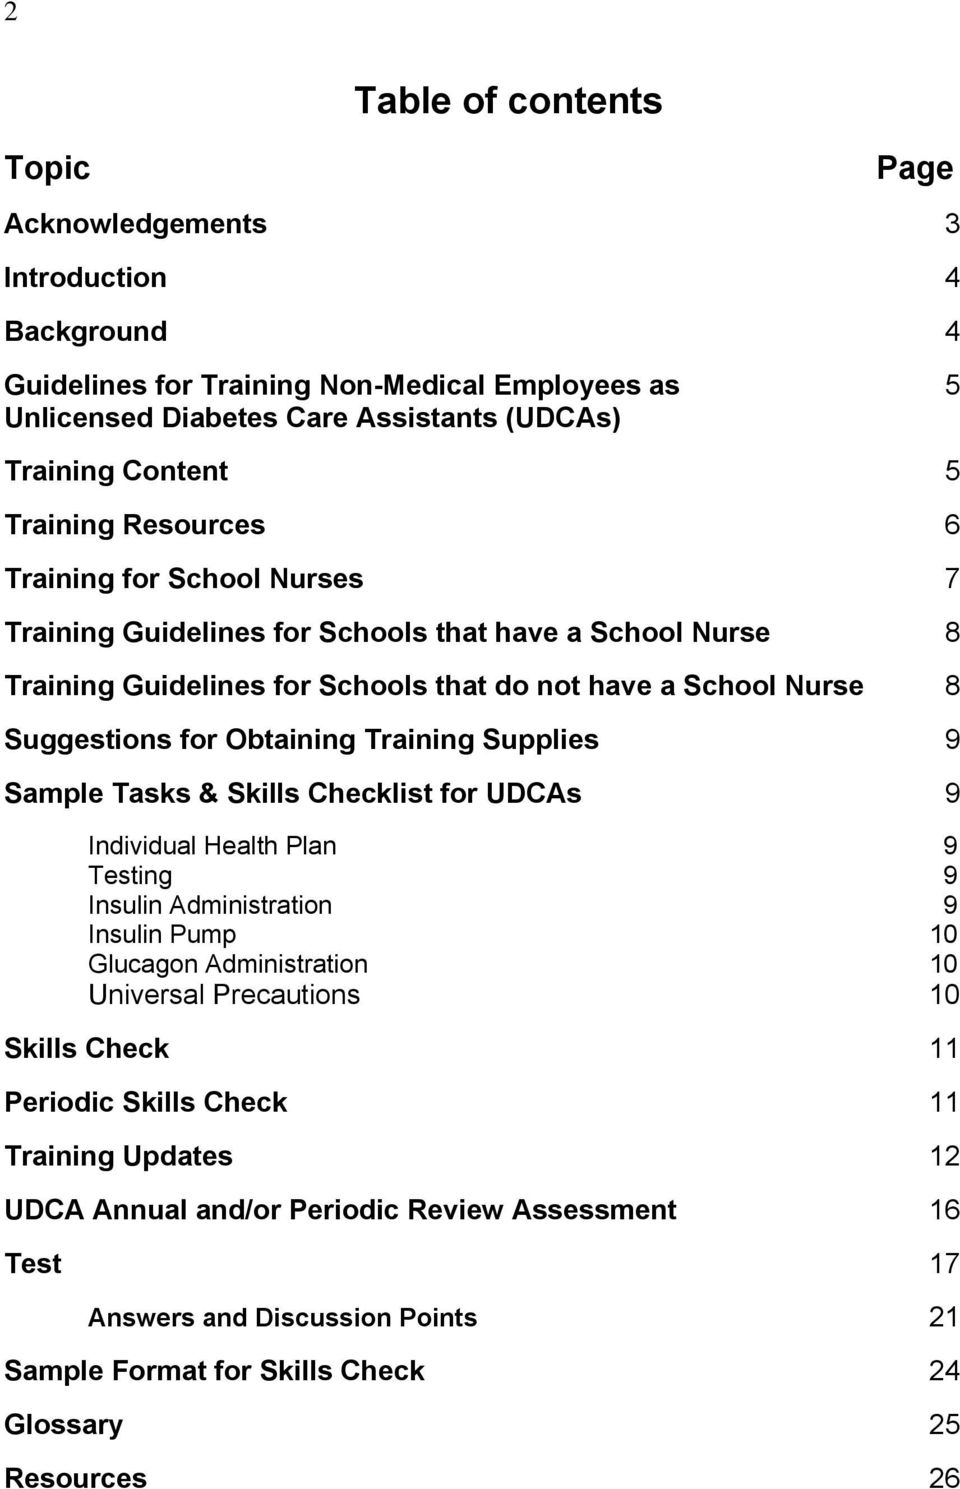 Obtaining Training Supplies 9 Sample Tasks & Skills Checklist for UDCAs 9 Individual Health Plan 9 Testing 9 Insulin Administration 9 Insulin Pump 10 Glucagon Administration 10 Universal Precautions